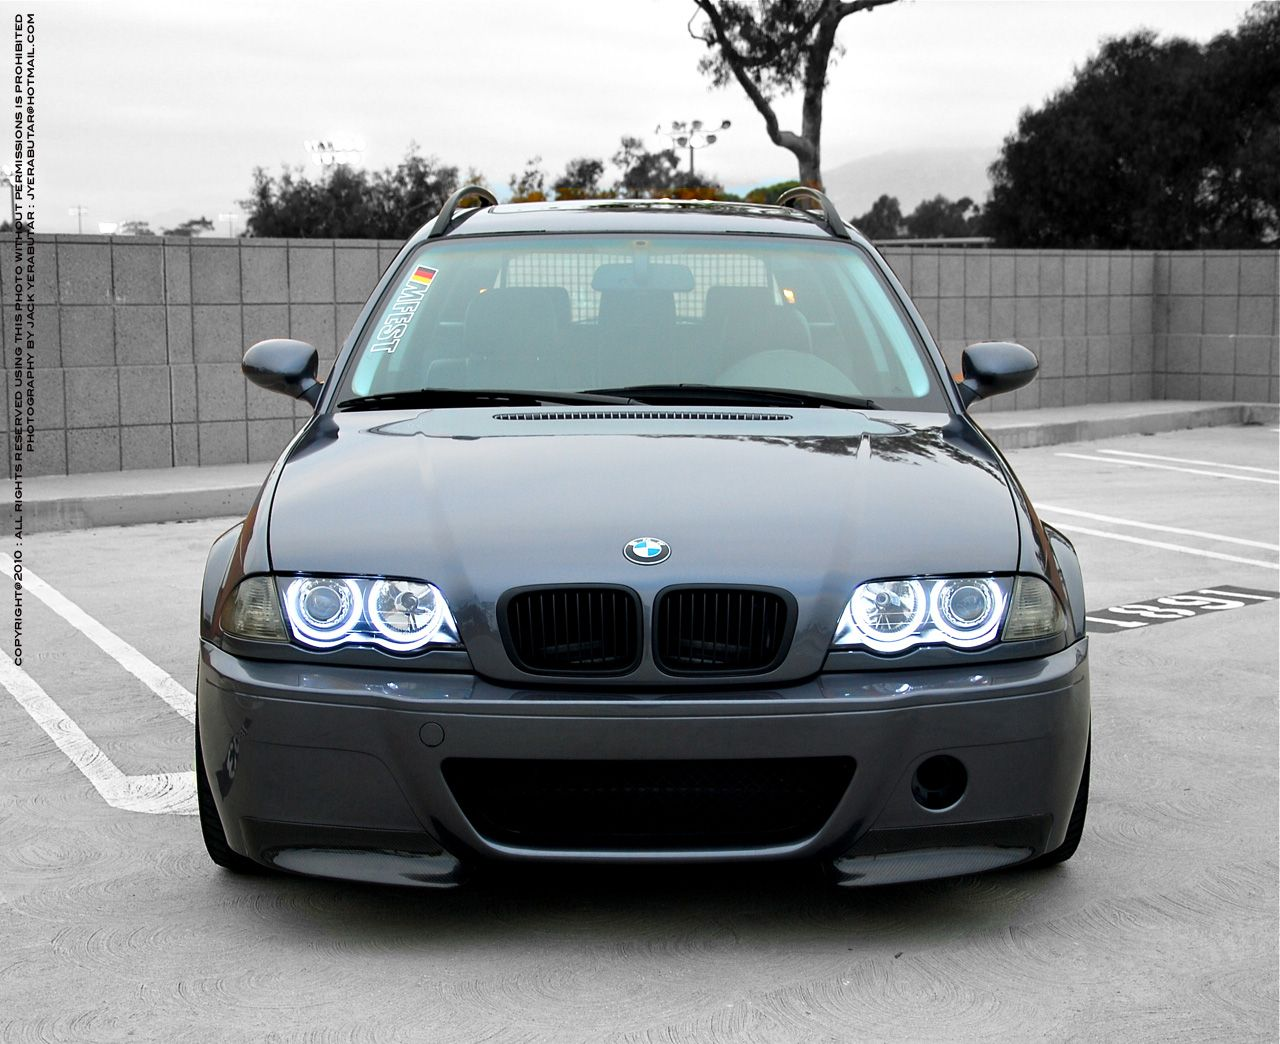 e46 touring e46 sedan build pinterest bmw e46 sedan and bmw e46. Black Bedroom Furniture Sets. Home Design Ideas